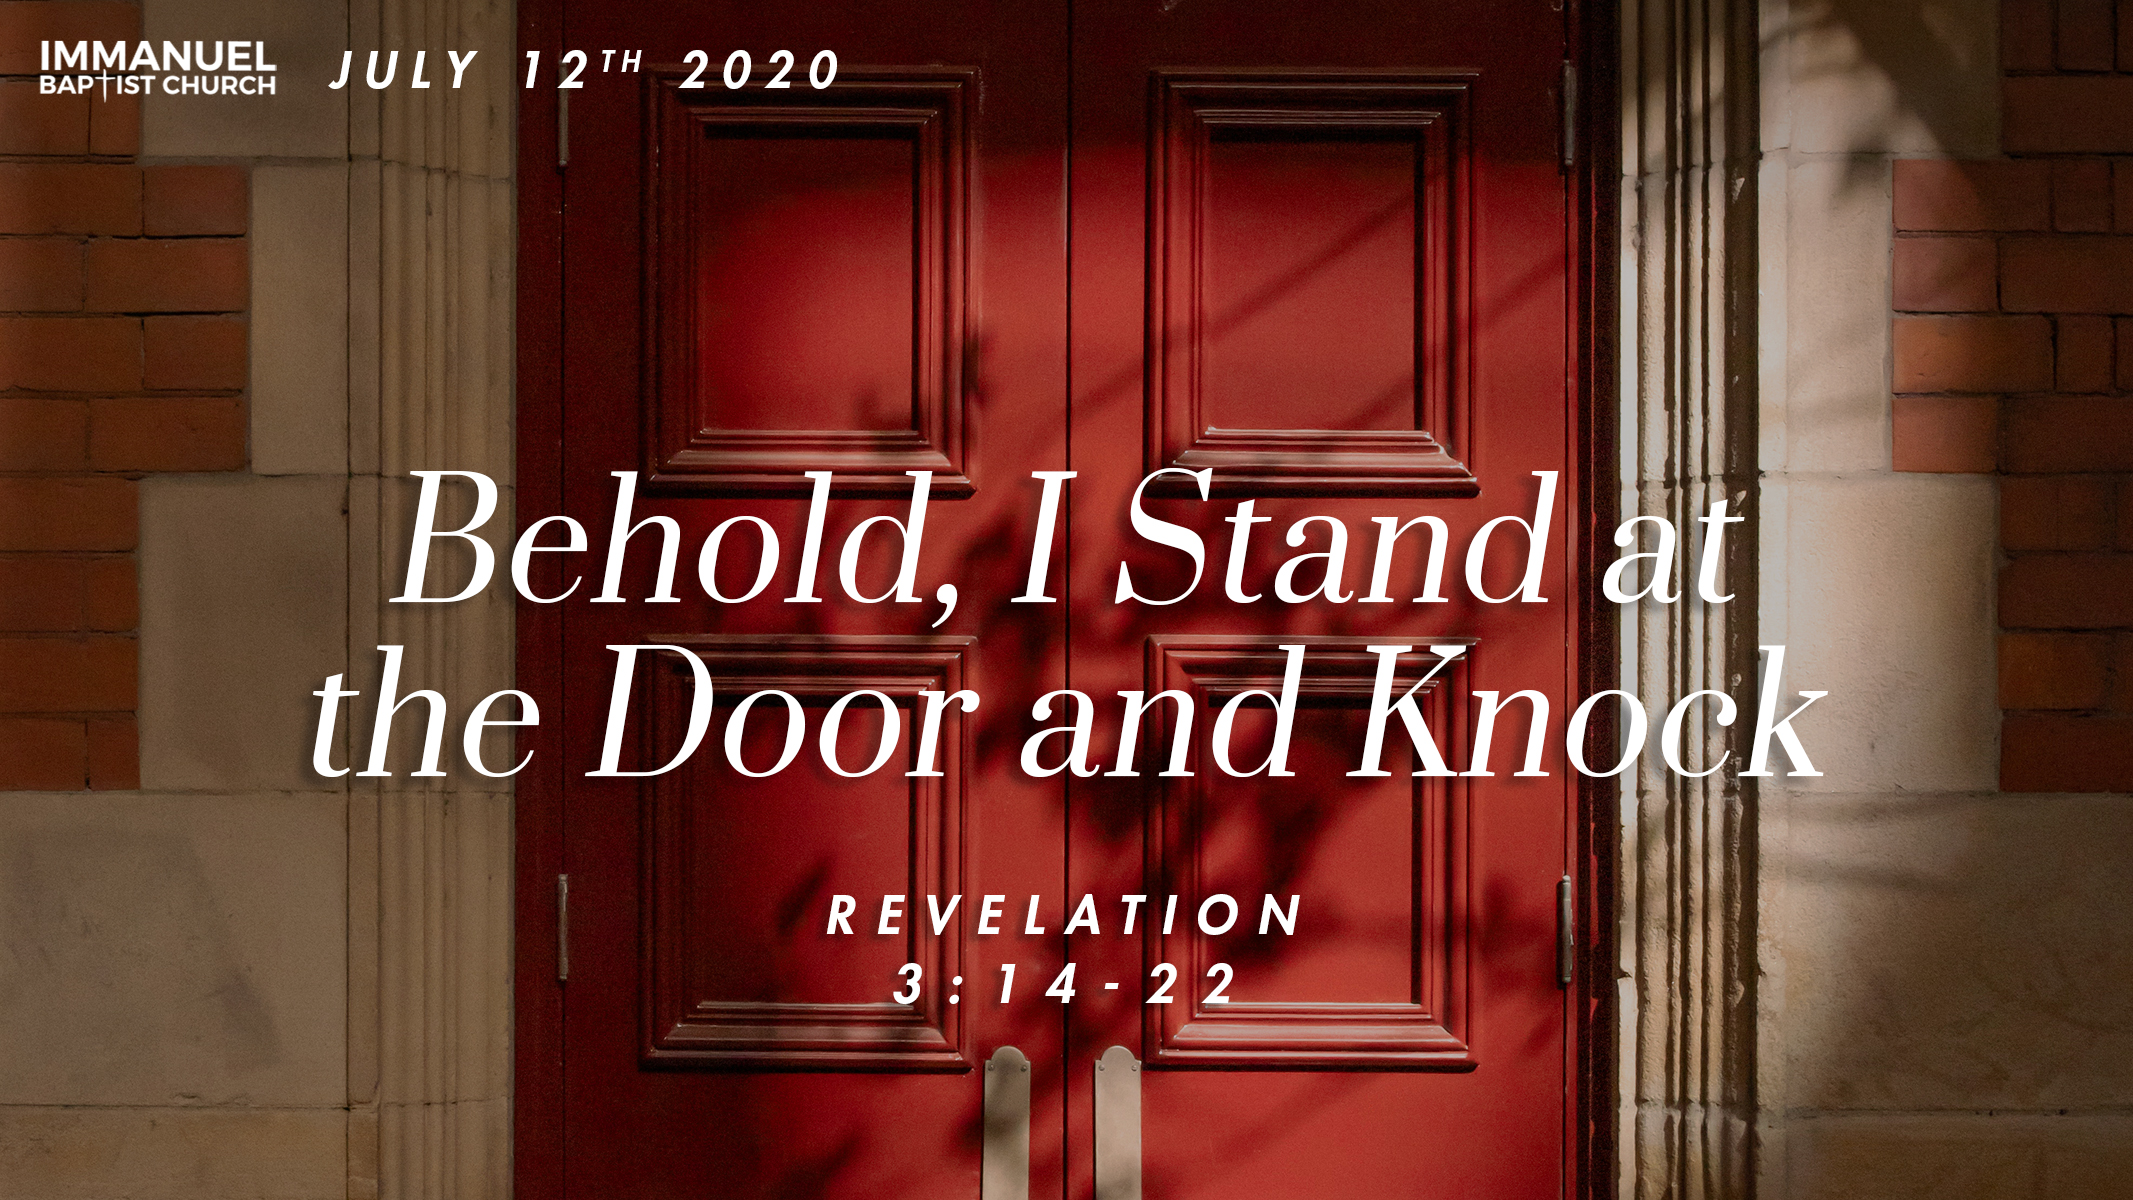 Behold I Stand at the Door and Knock Image